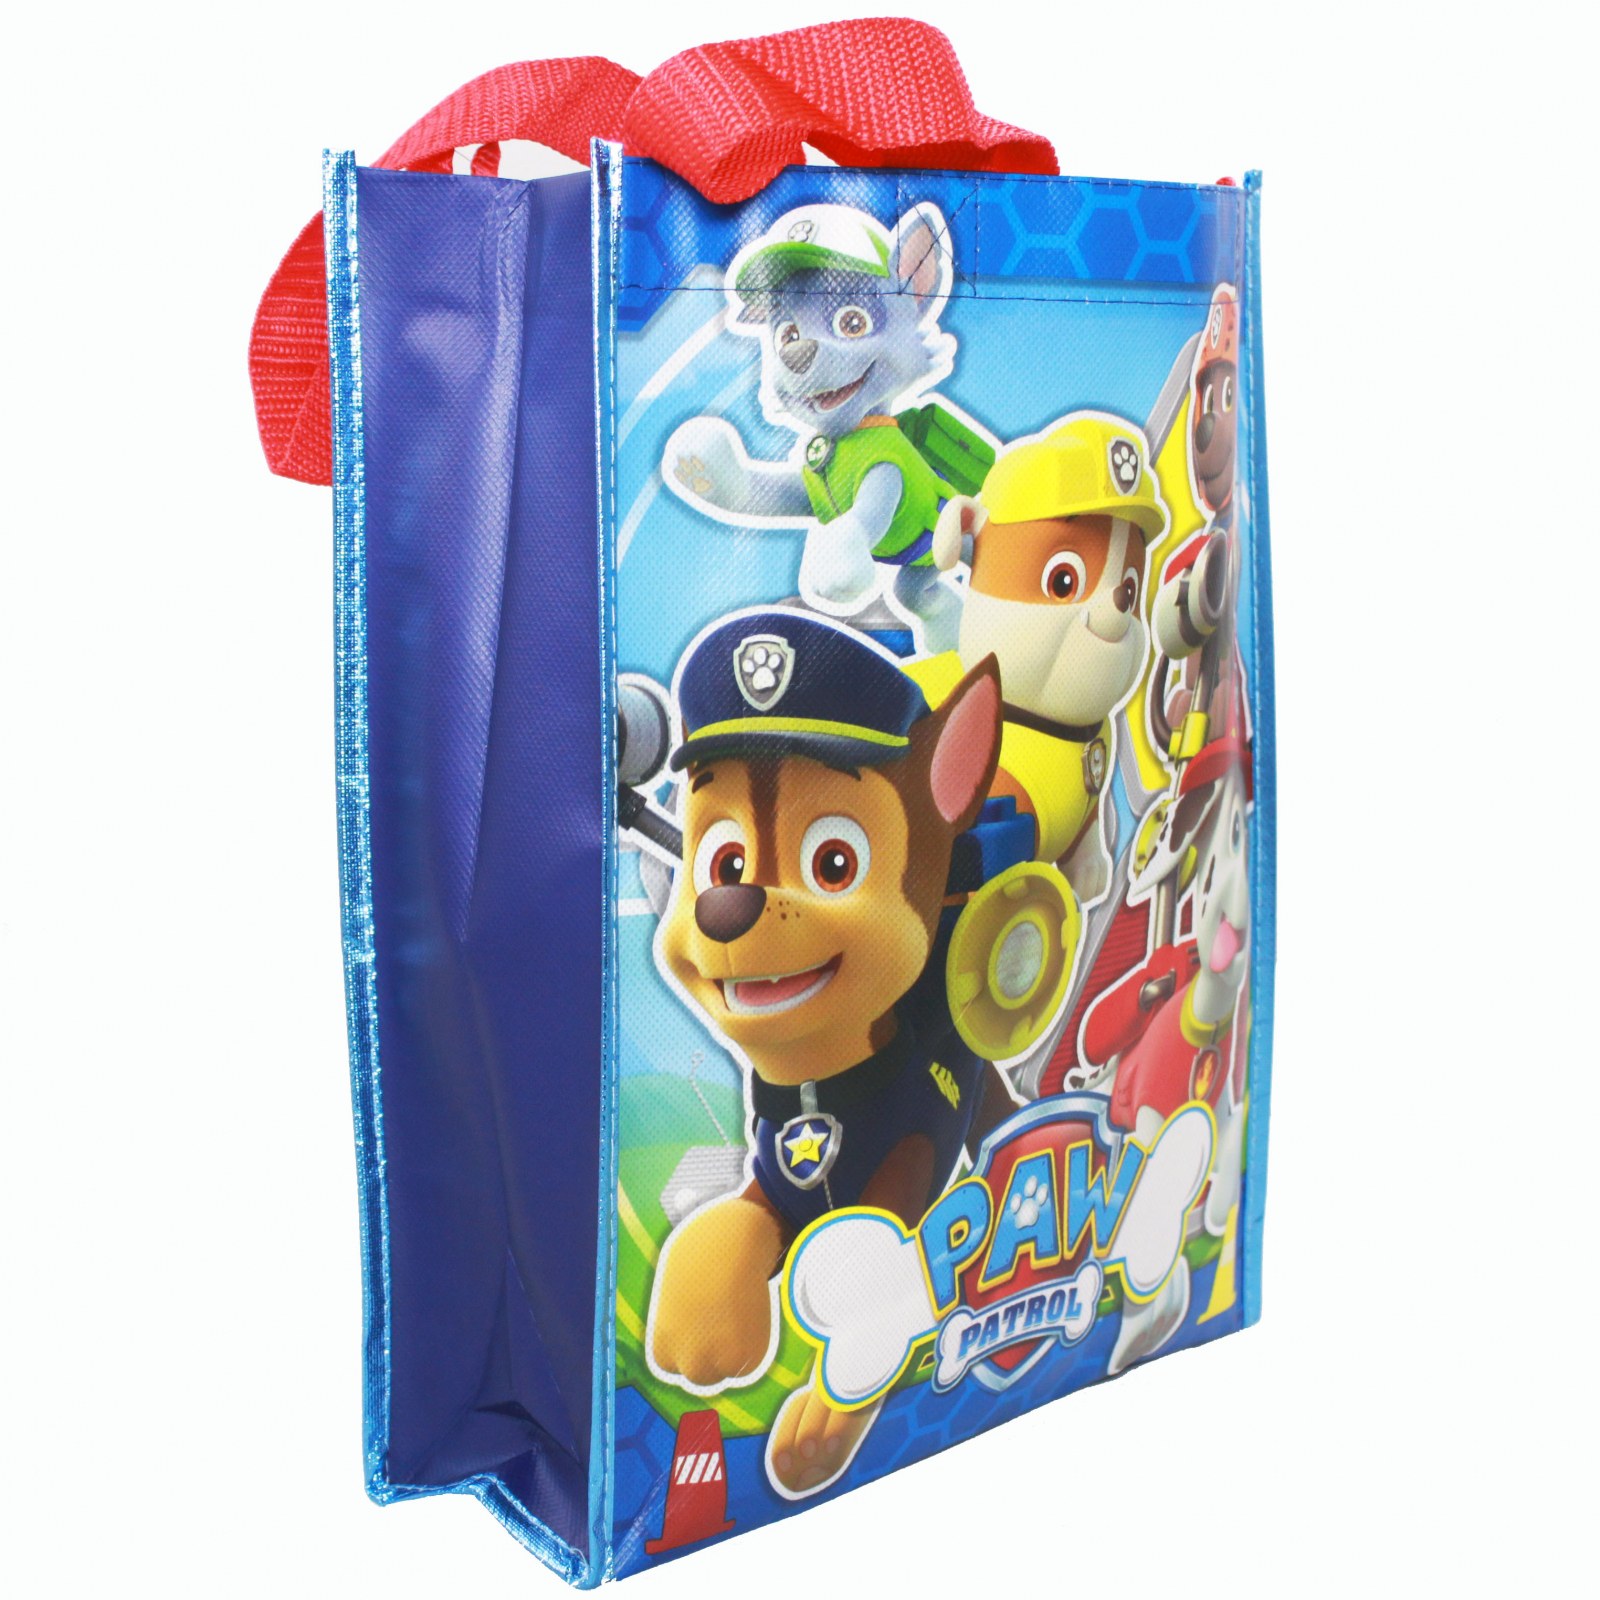 Nickelodeon Paw Patrol Reusable 12 inch Non Woven Grocery Tote Bag